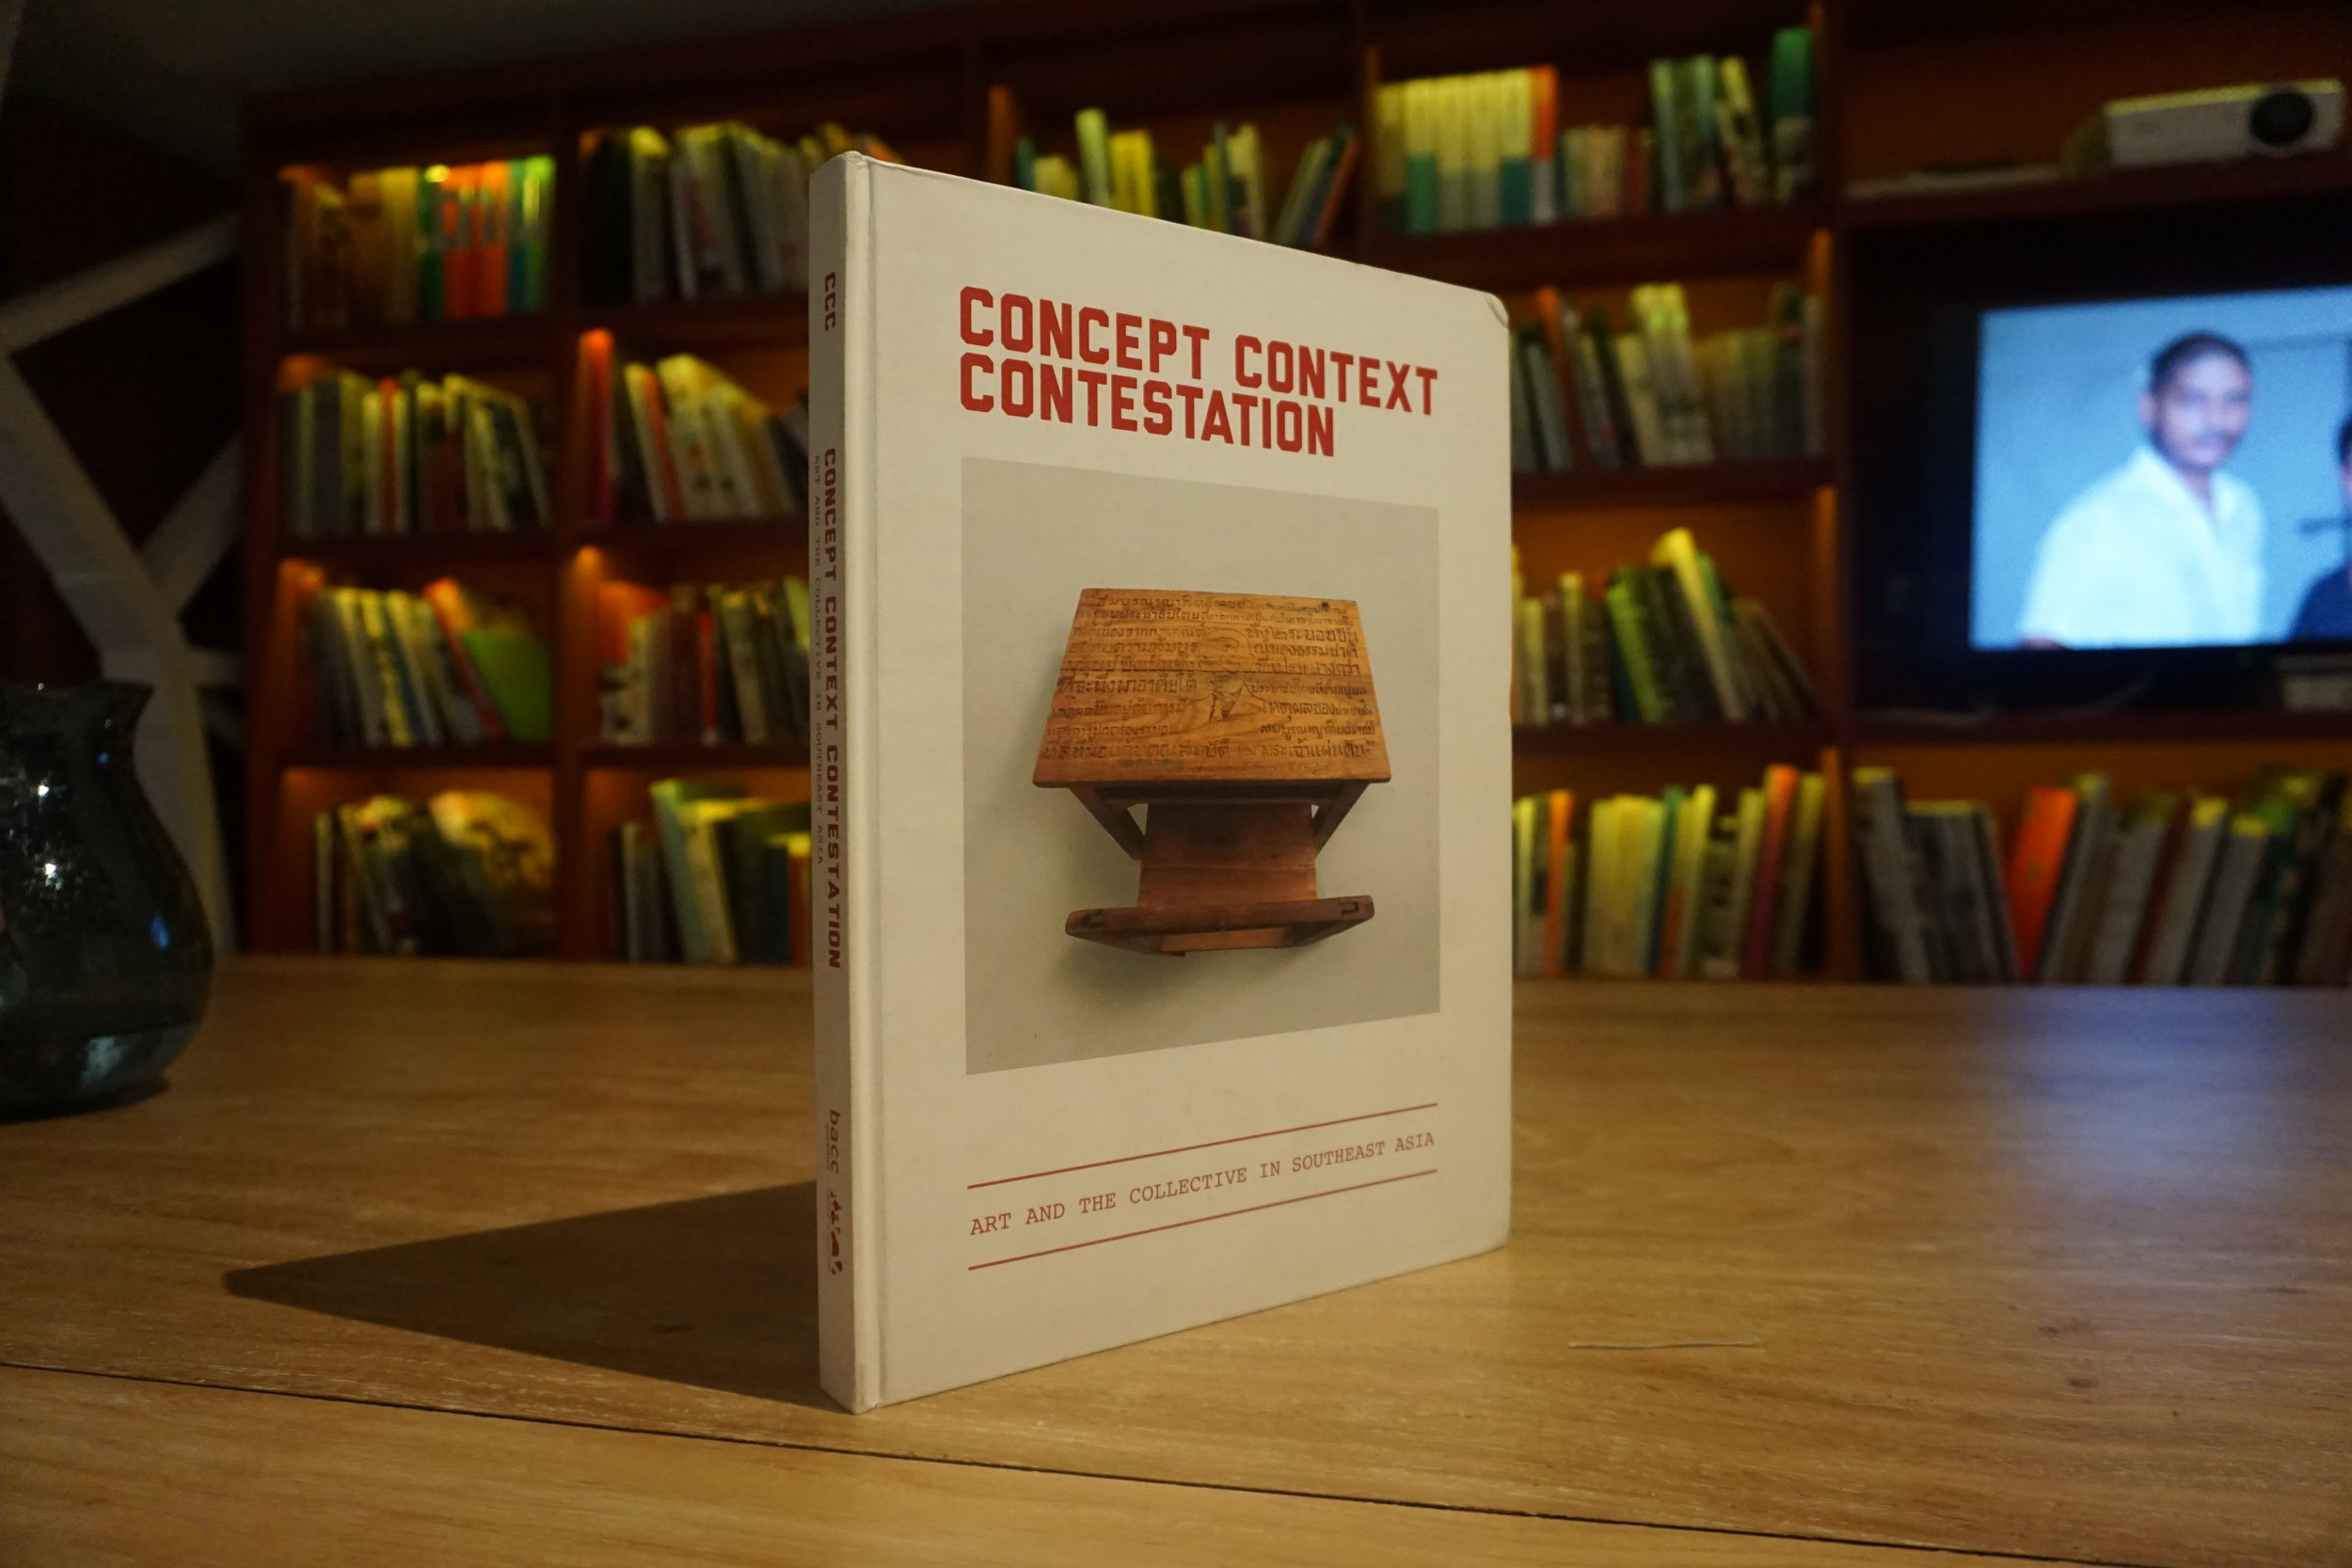 Concept Context Contestation: Art and The Collective in Southeast Asia (Bangkok Art and Culture Centre Foundation, 2014) ed. by Iola Lenzi.